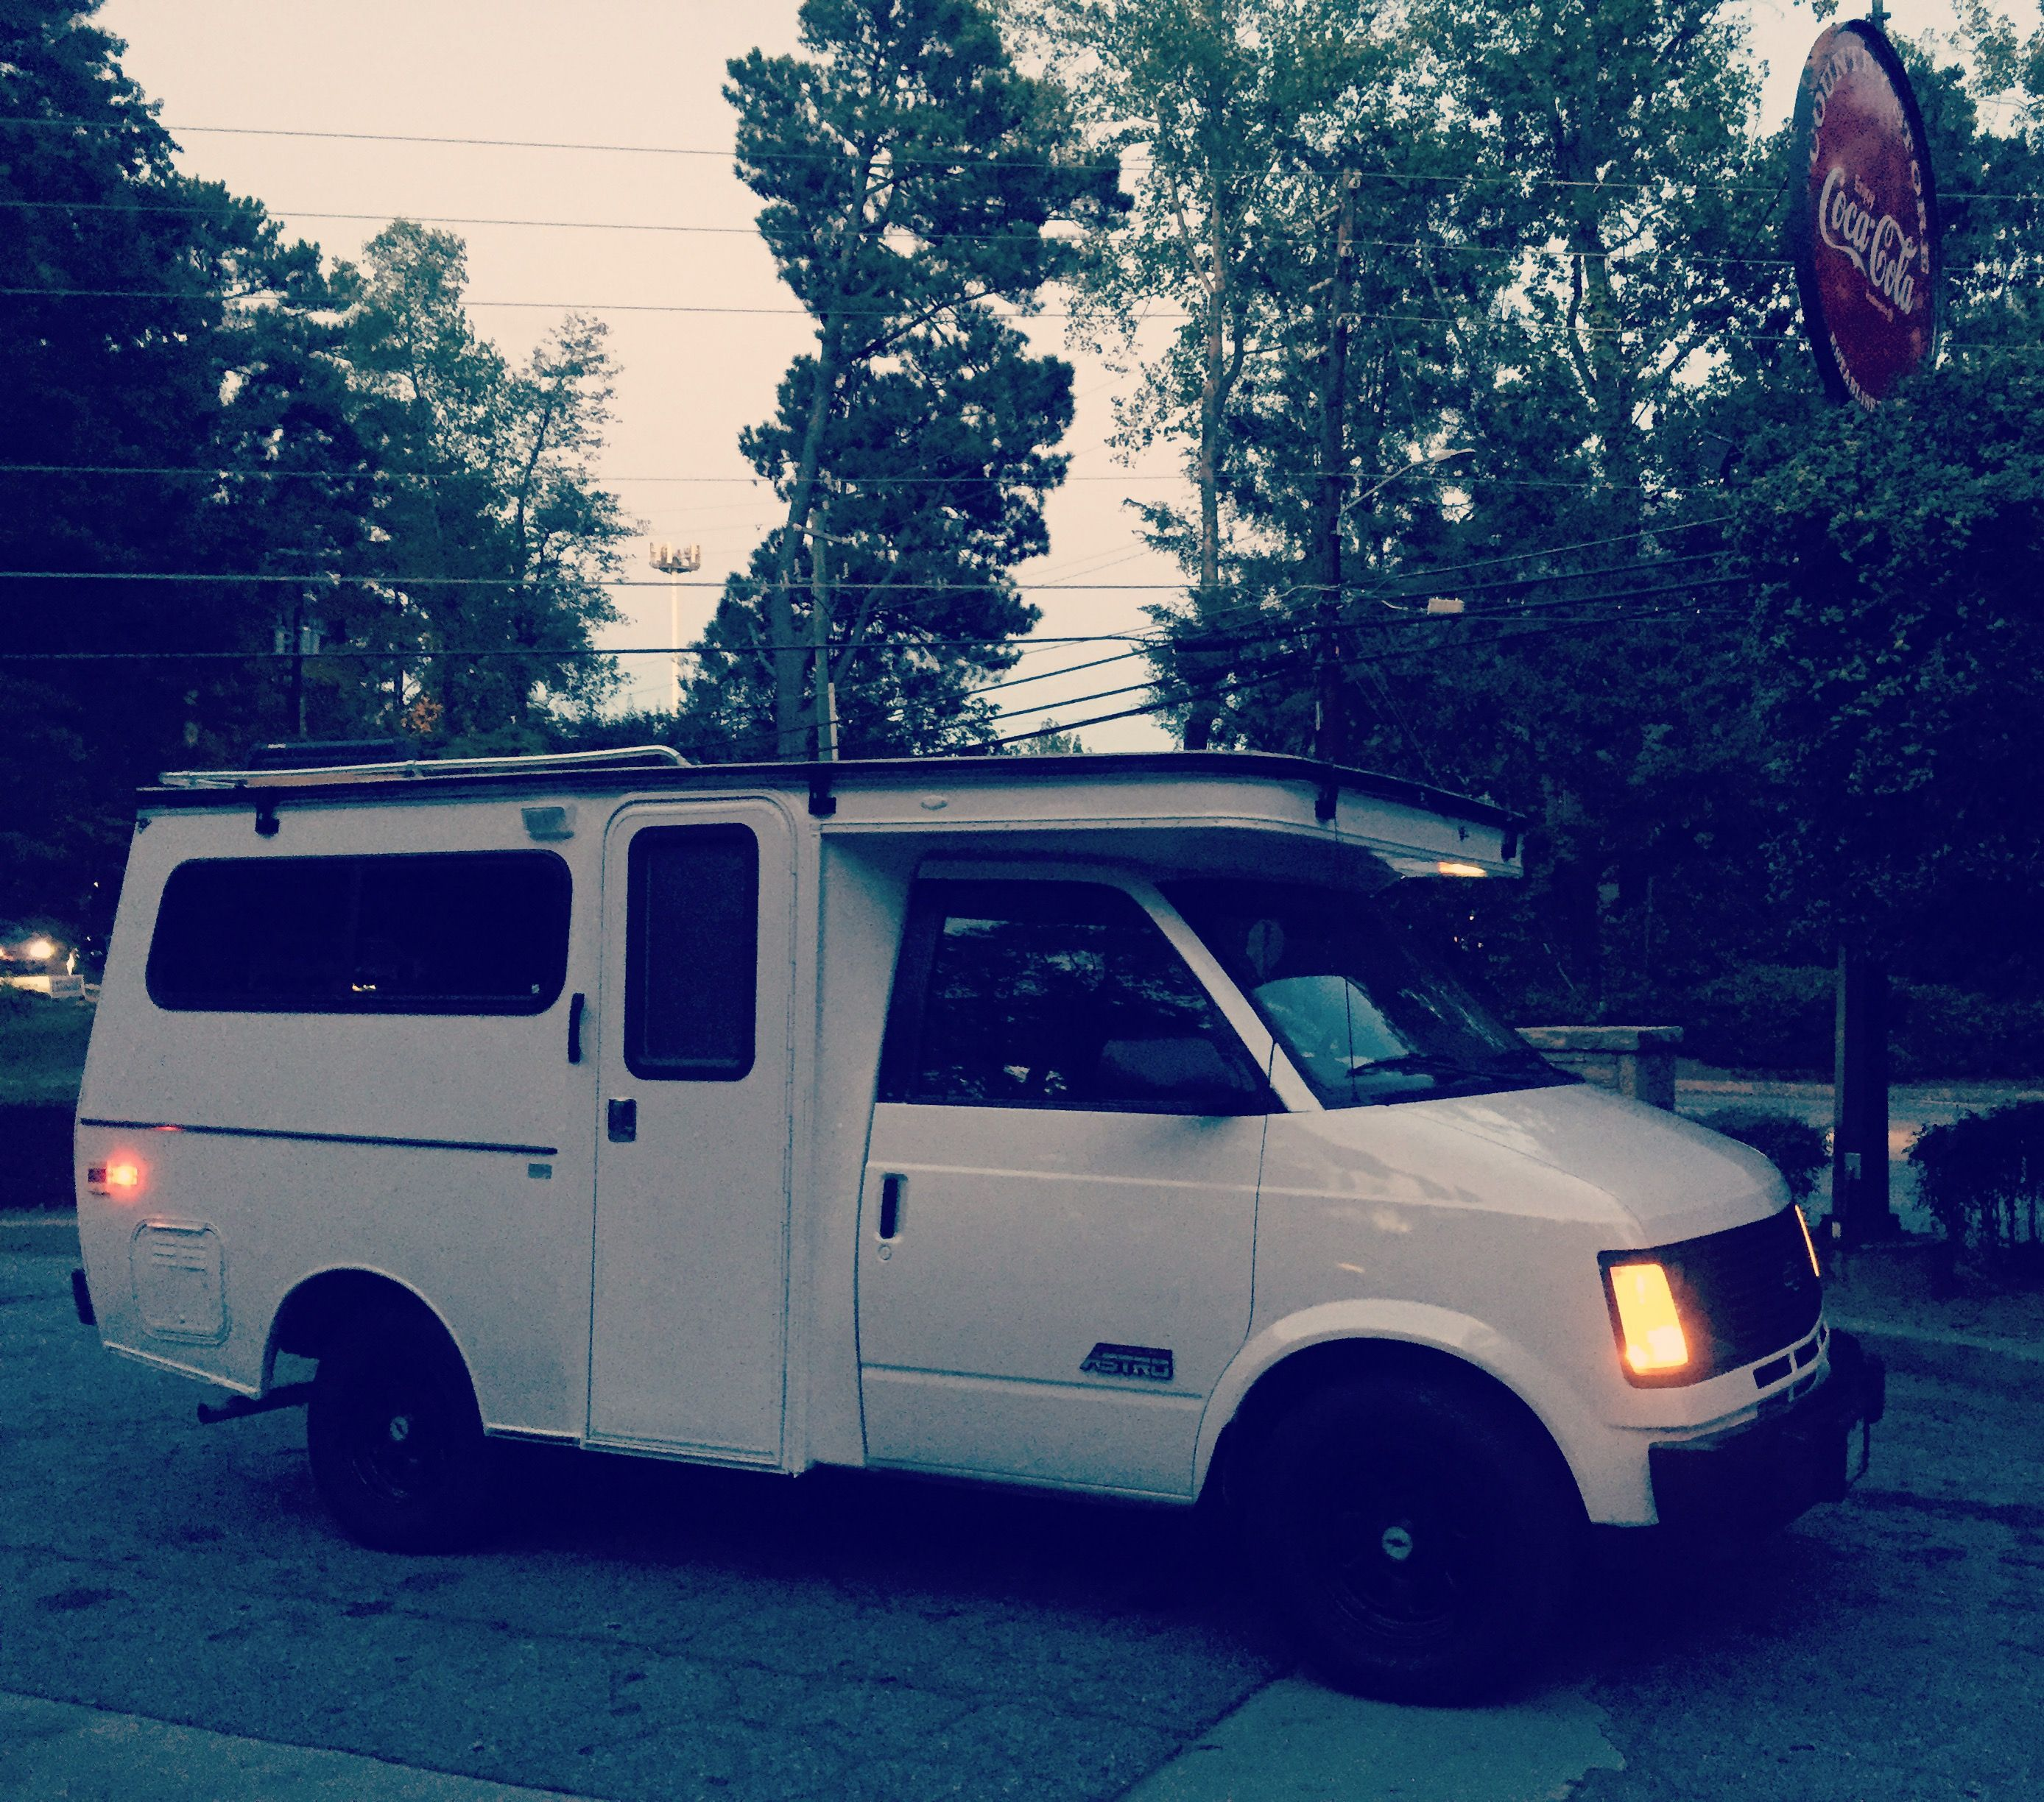 small resolution of 1992 chevy astro tiger gt provan awd rv camper van full kitchen heat bath shower in 16 ft of space compare to sportsmobiles and sprinter 4x4 vans but